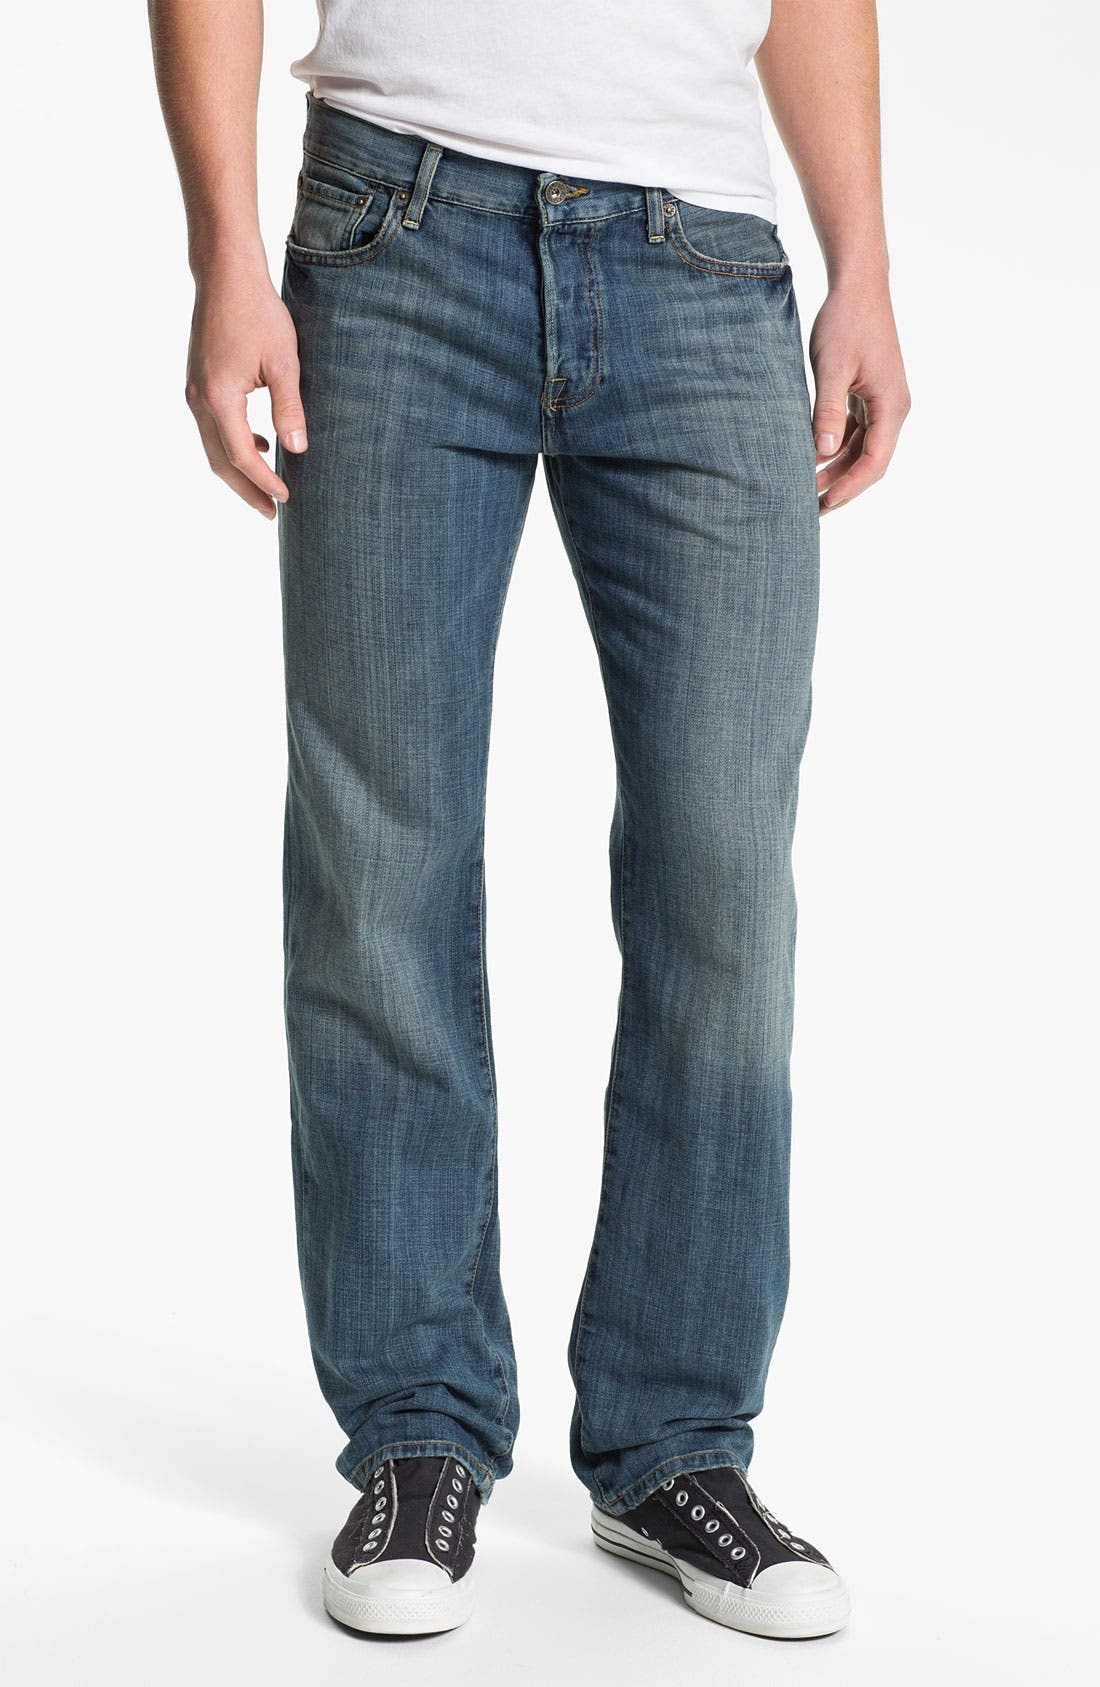 Alternate Image 1 Selected - Lucky Brand '221 Original' Straight Leg Jeans (Quartzite)